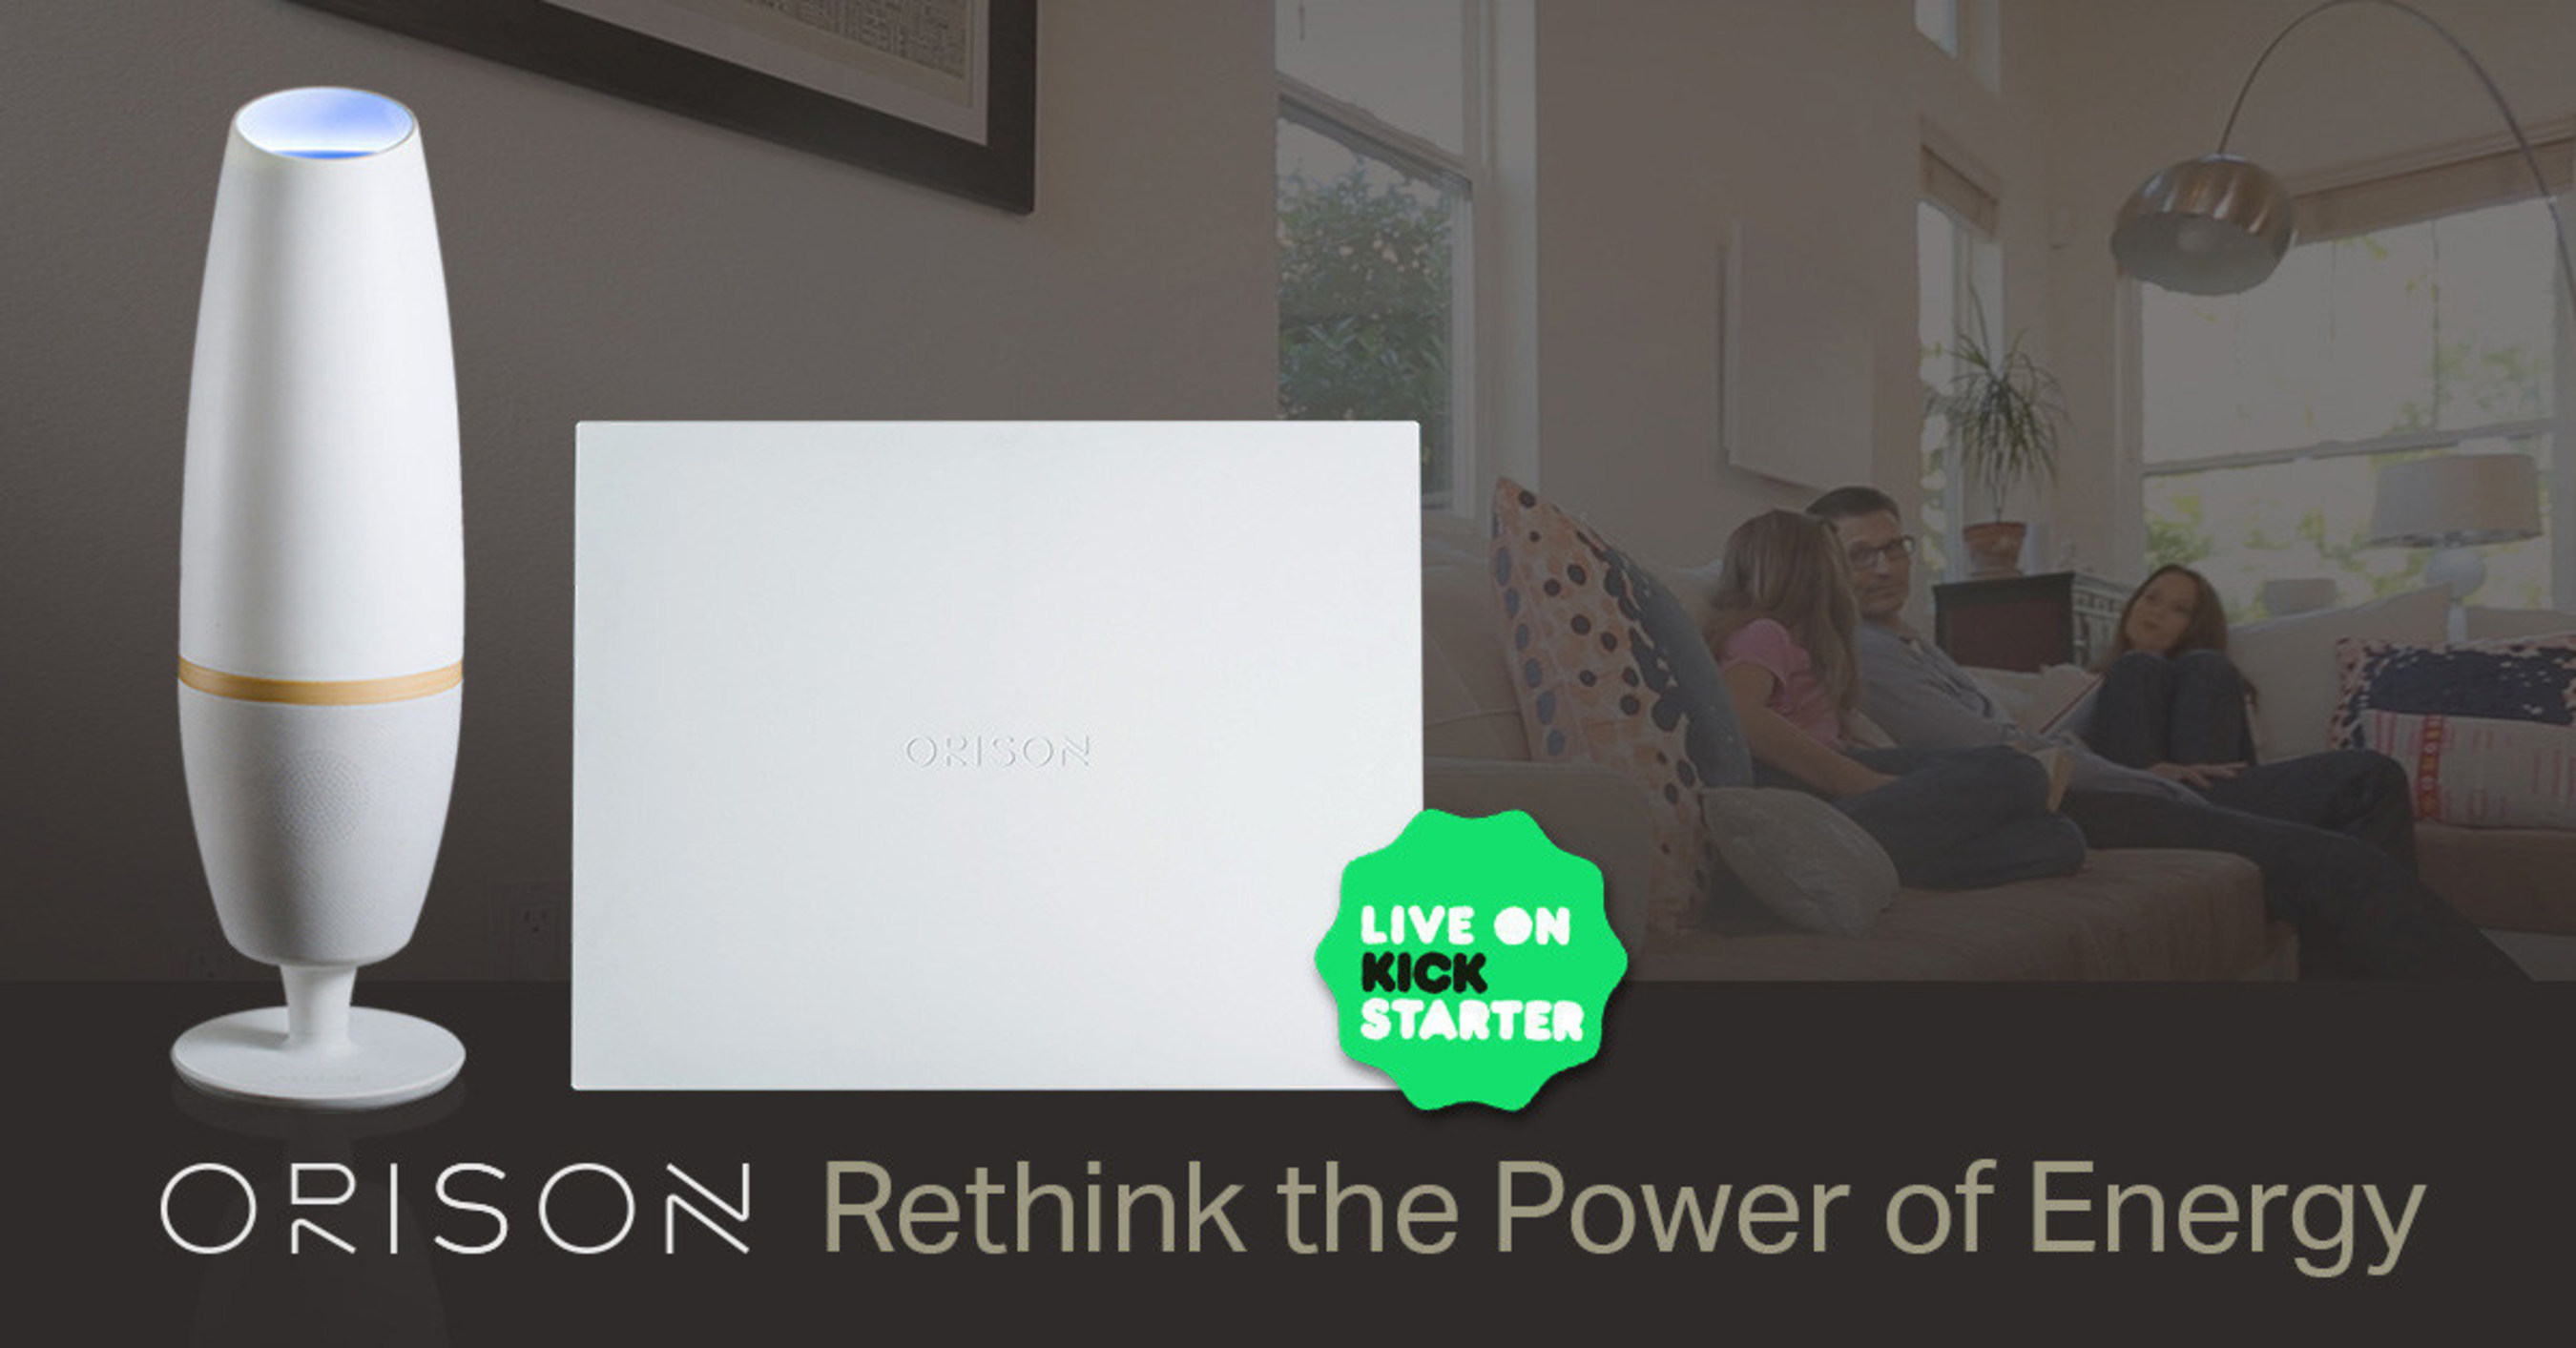 Orison plug-and-play energy storage powers homes and businesses to reduce energy costs, provide backup energy ...